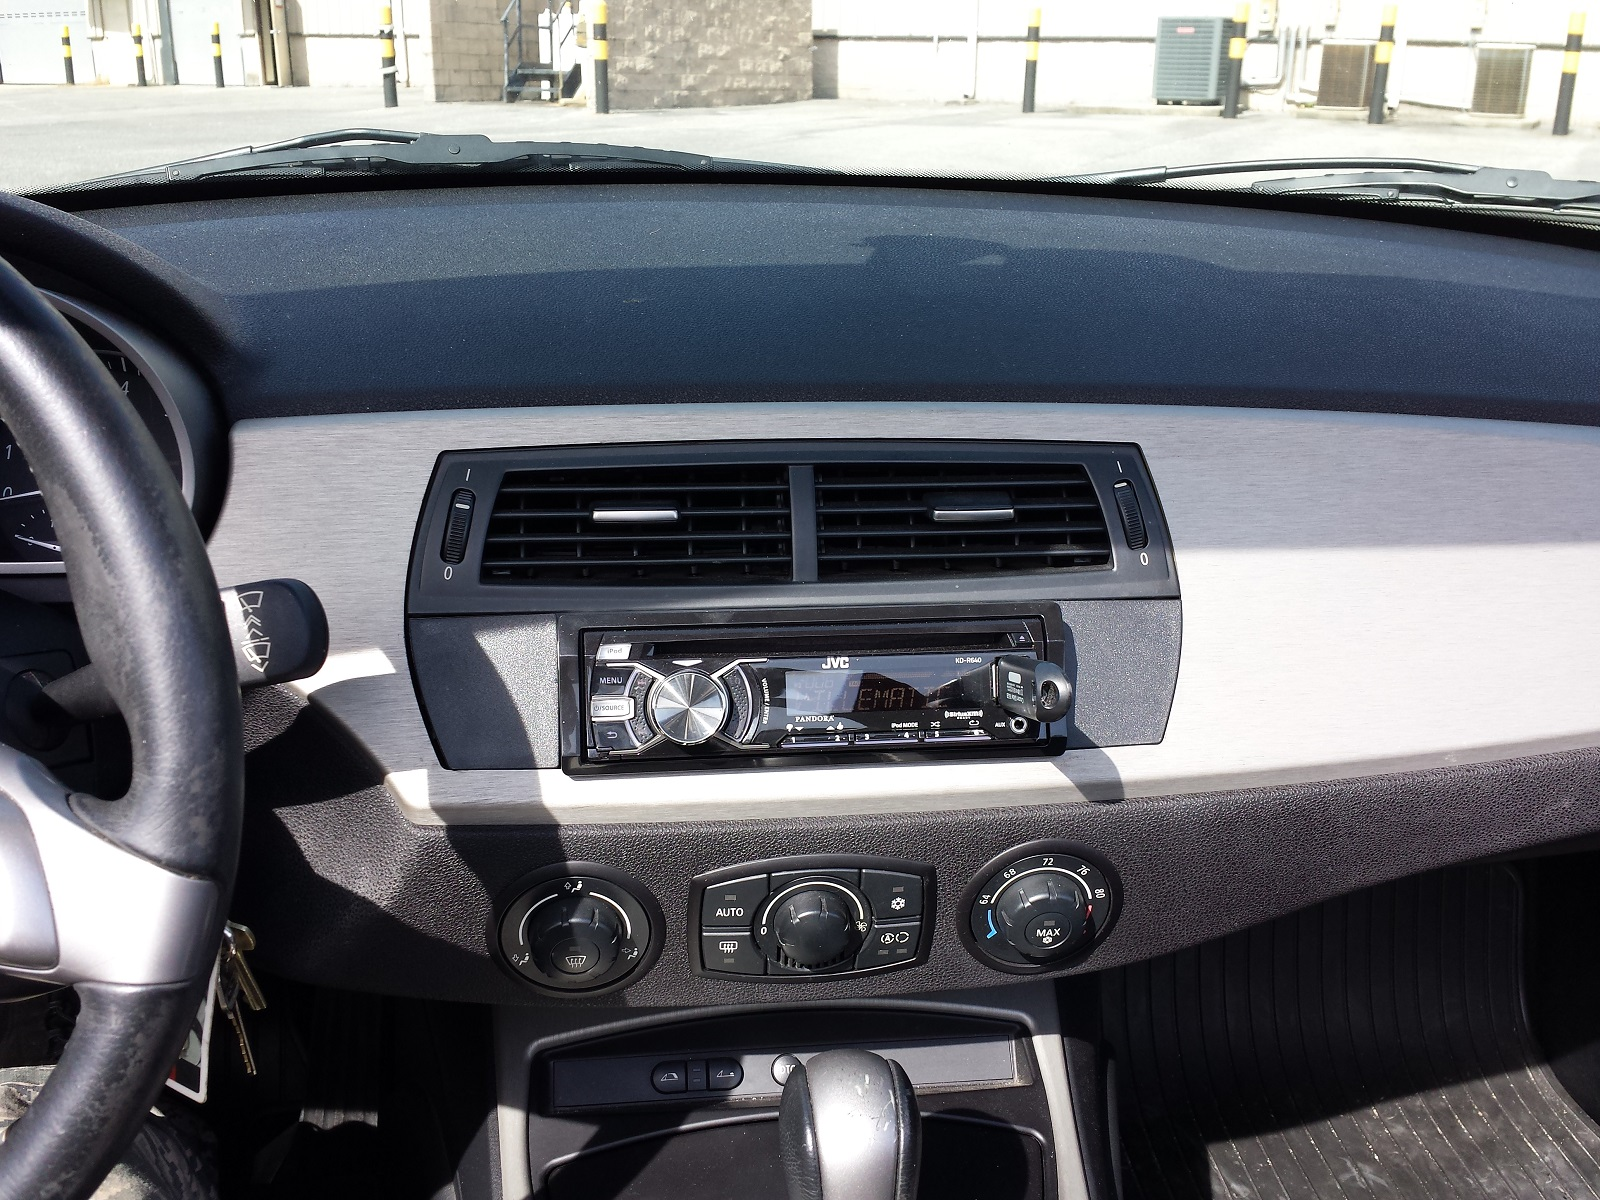 How To Replace 2011 2012 2013 Opel Astra J Radio With Obd2 Bluetooth Mirror Link Touch Screen in addition 2014 Jeep Patriot Review Americas Cheapest Suv Winner besides Toyota Tundra 2003 2006 Iphone Aux Kit also Ca as well 33348 Bmw E30 325i Convertible 5 Speed. on aftermarket stereo